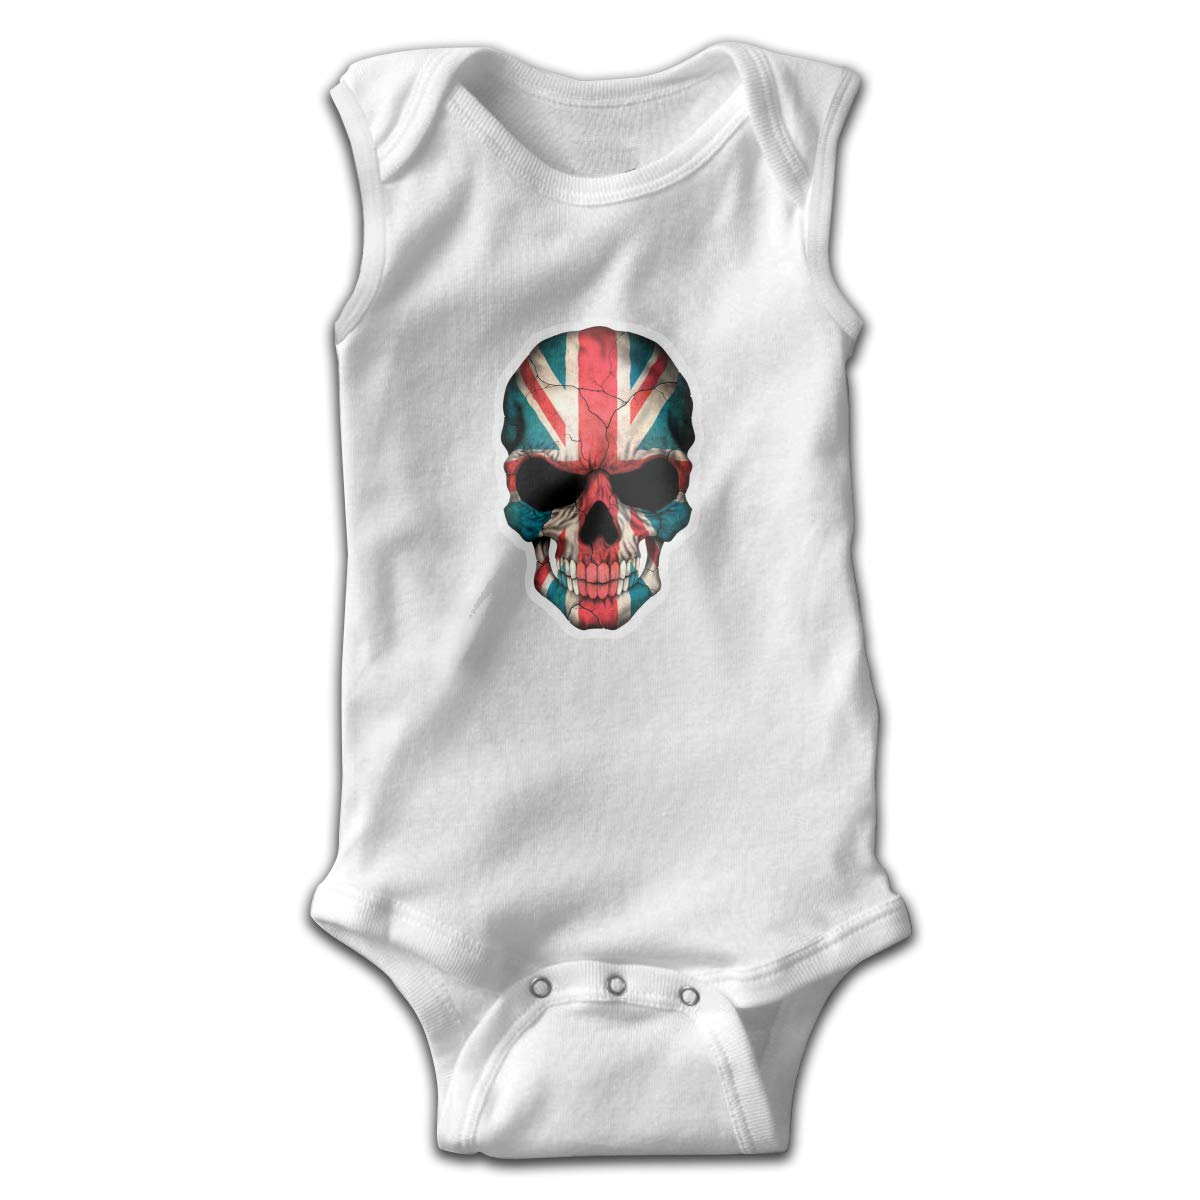 Dunpaiaa UK Flag Skull Newborn Crawling Suit Sleeveless Romper Bodysuit Onesies Jumpsuit Black